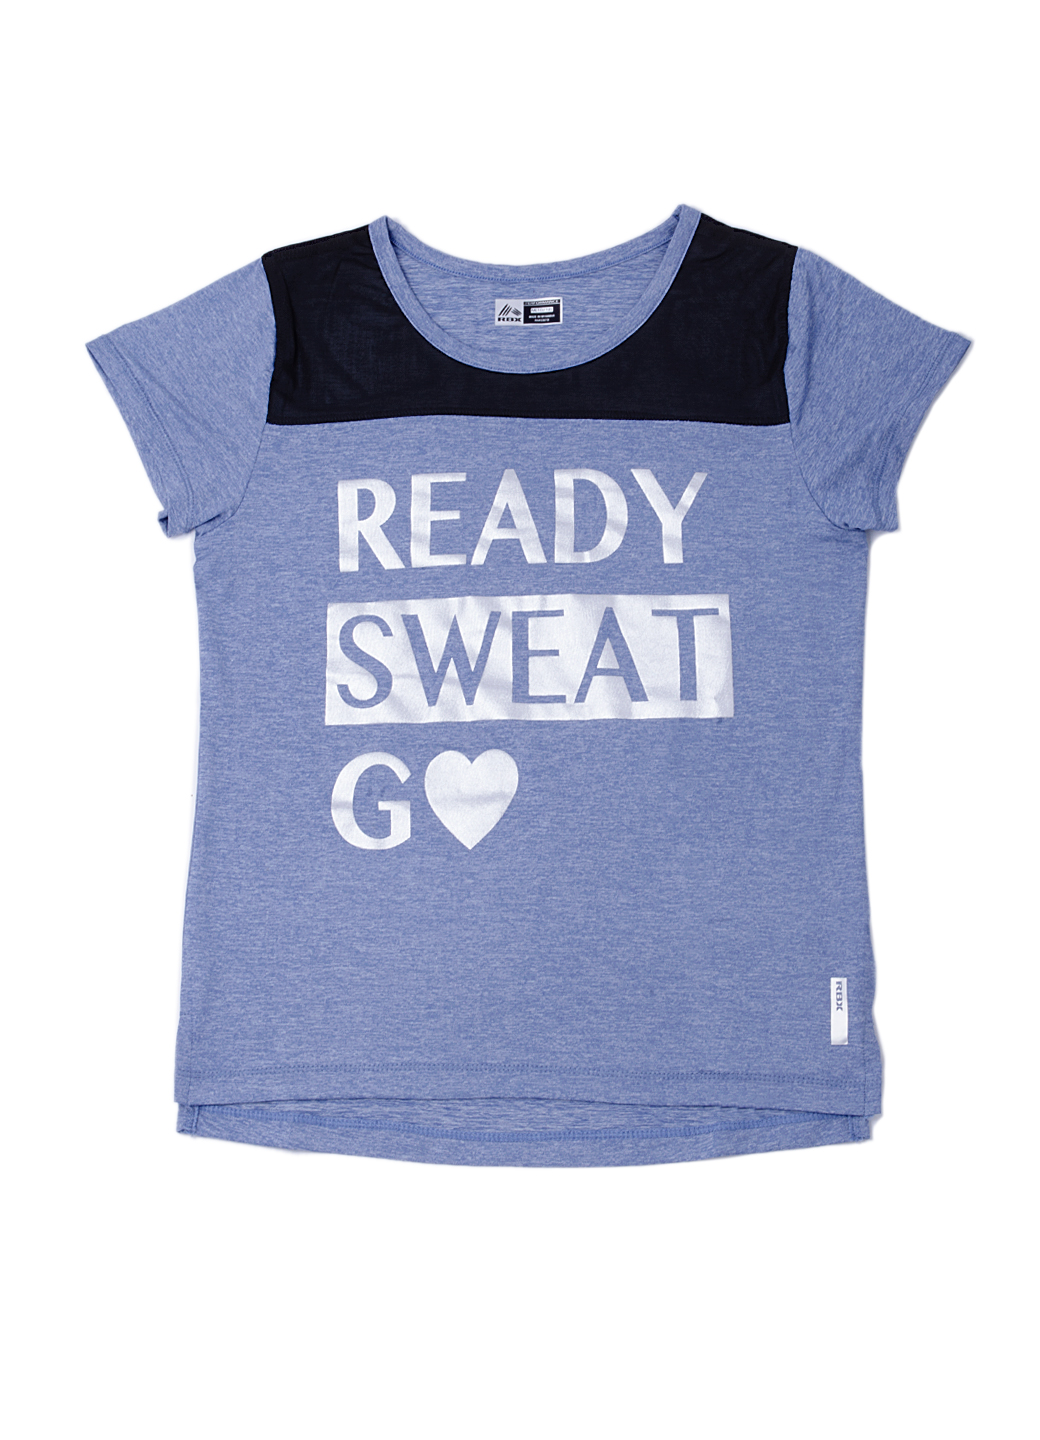 RBX Active Girl's Fashion Tops